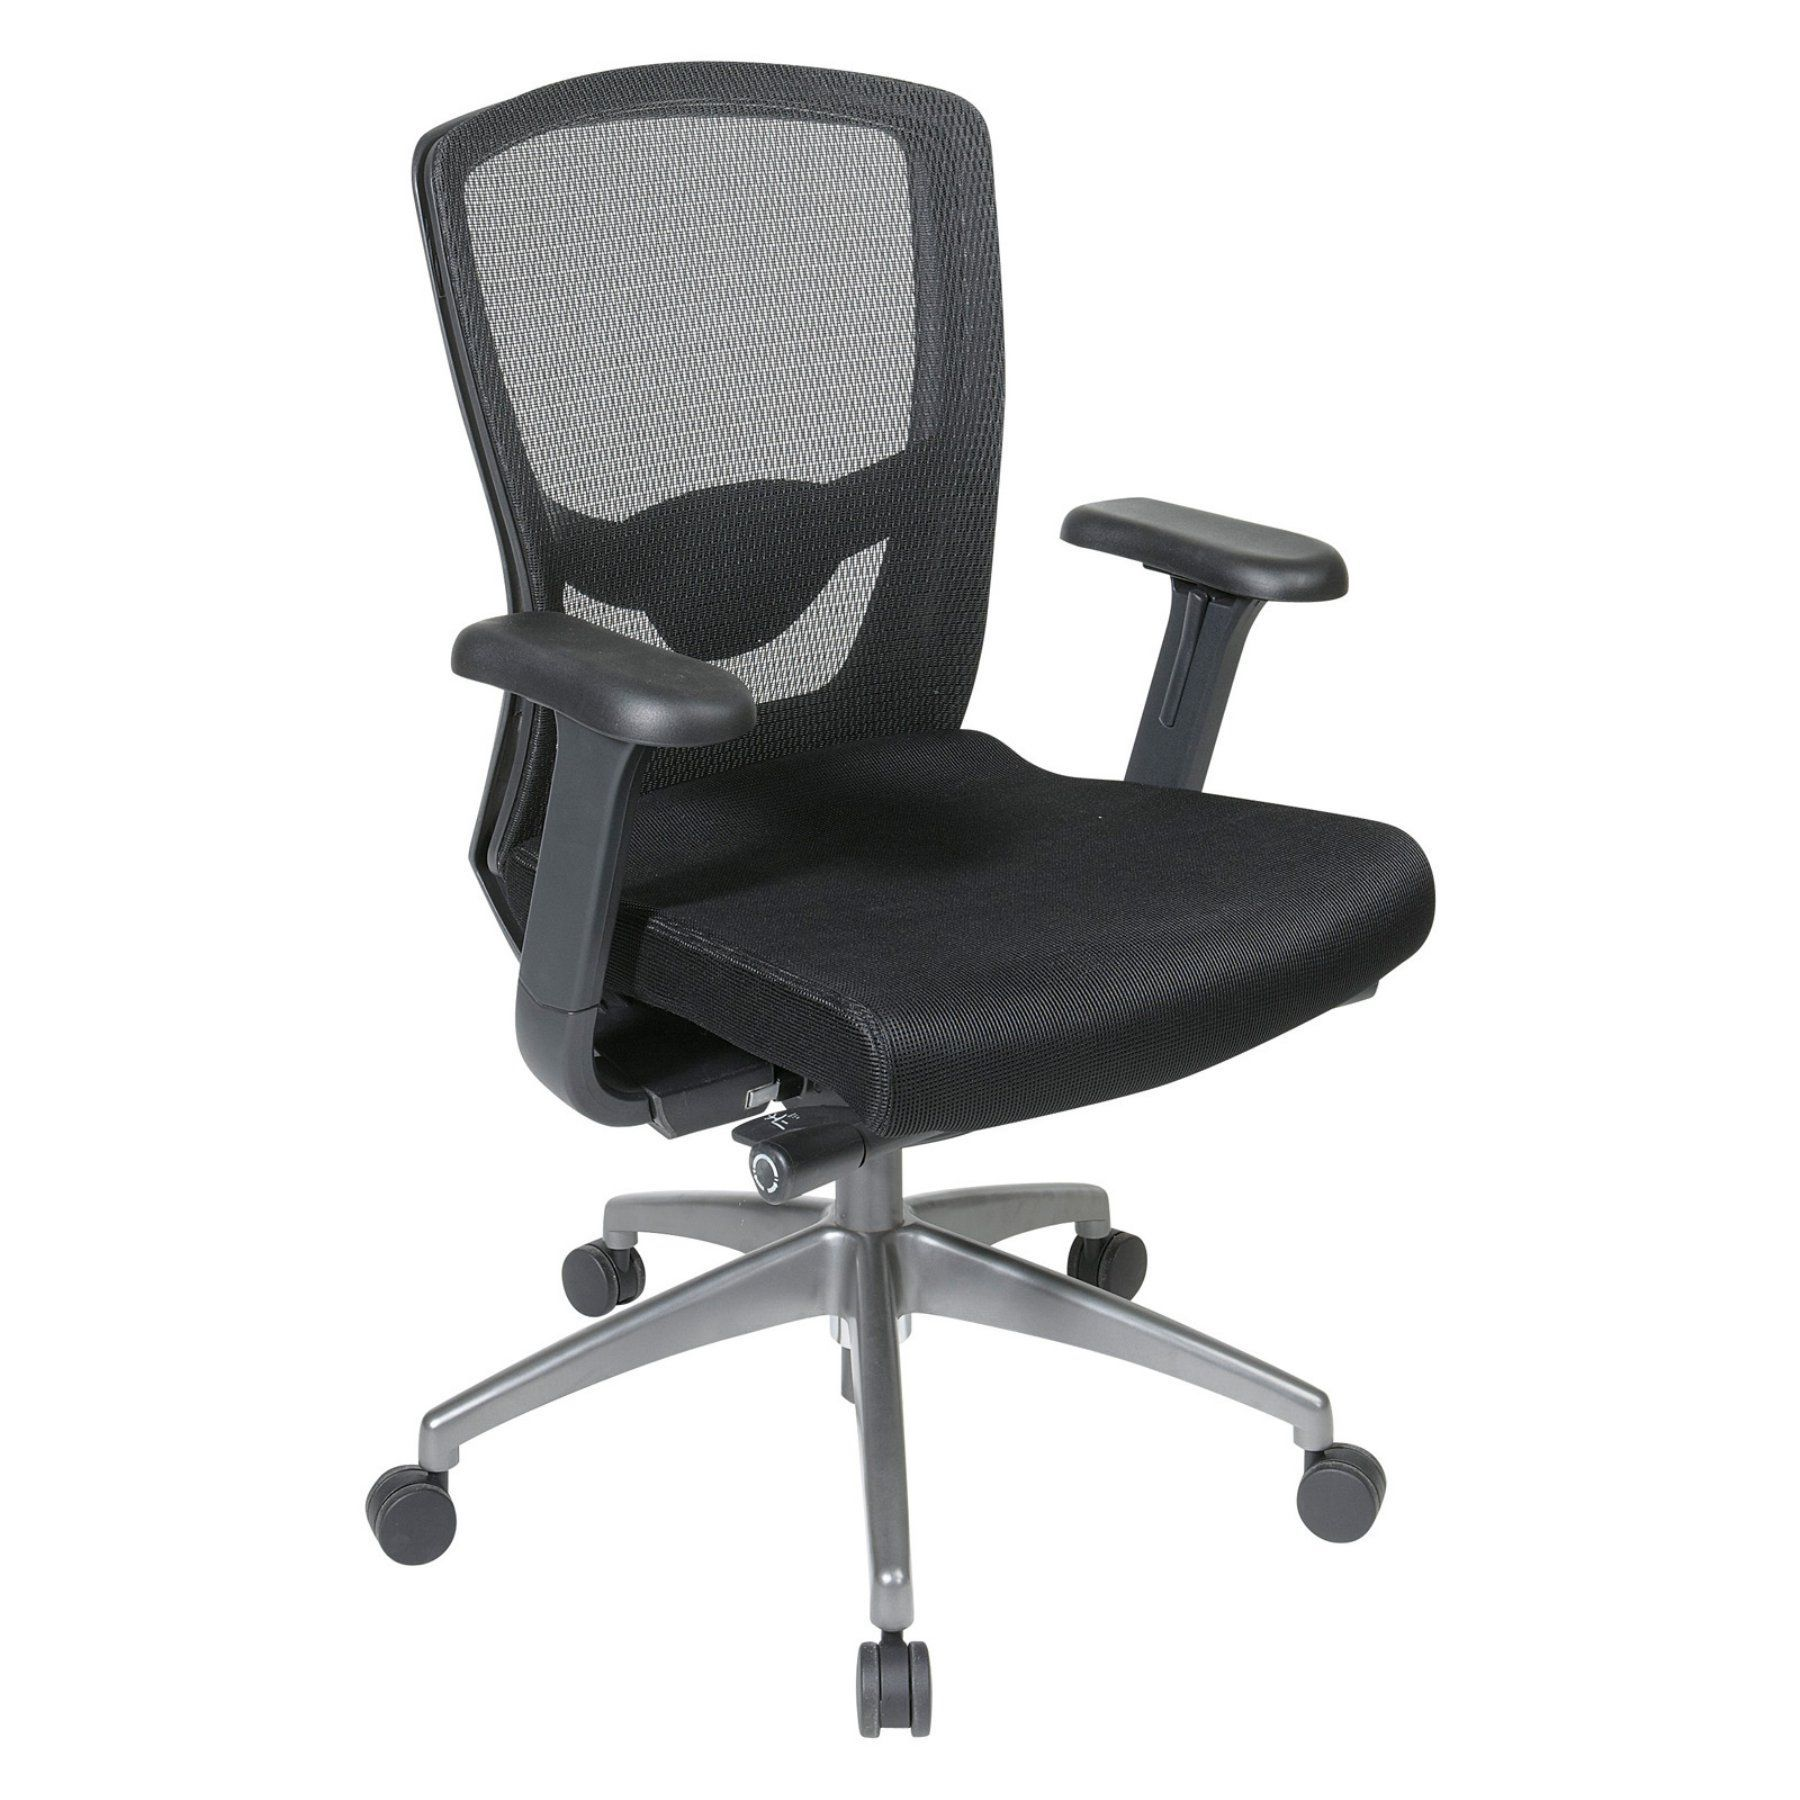 Office star black progrid high back chair with adjustable arms and